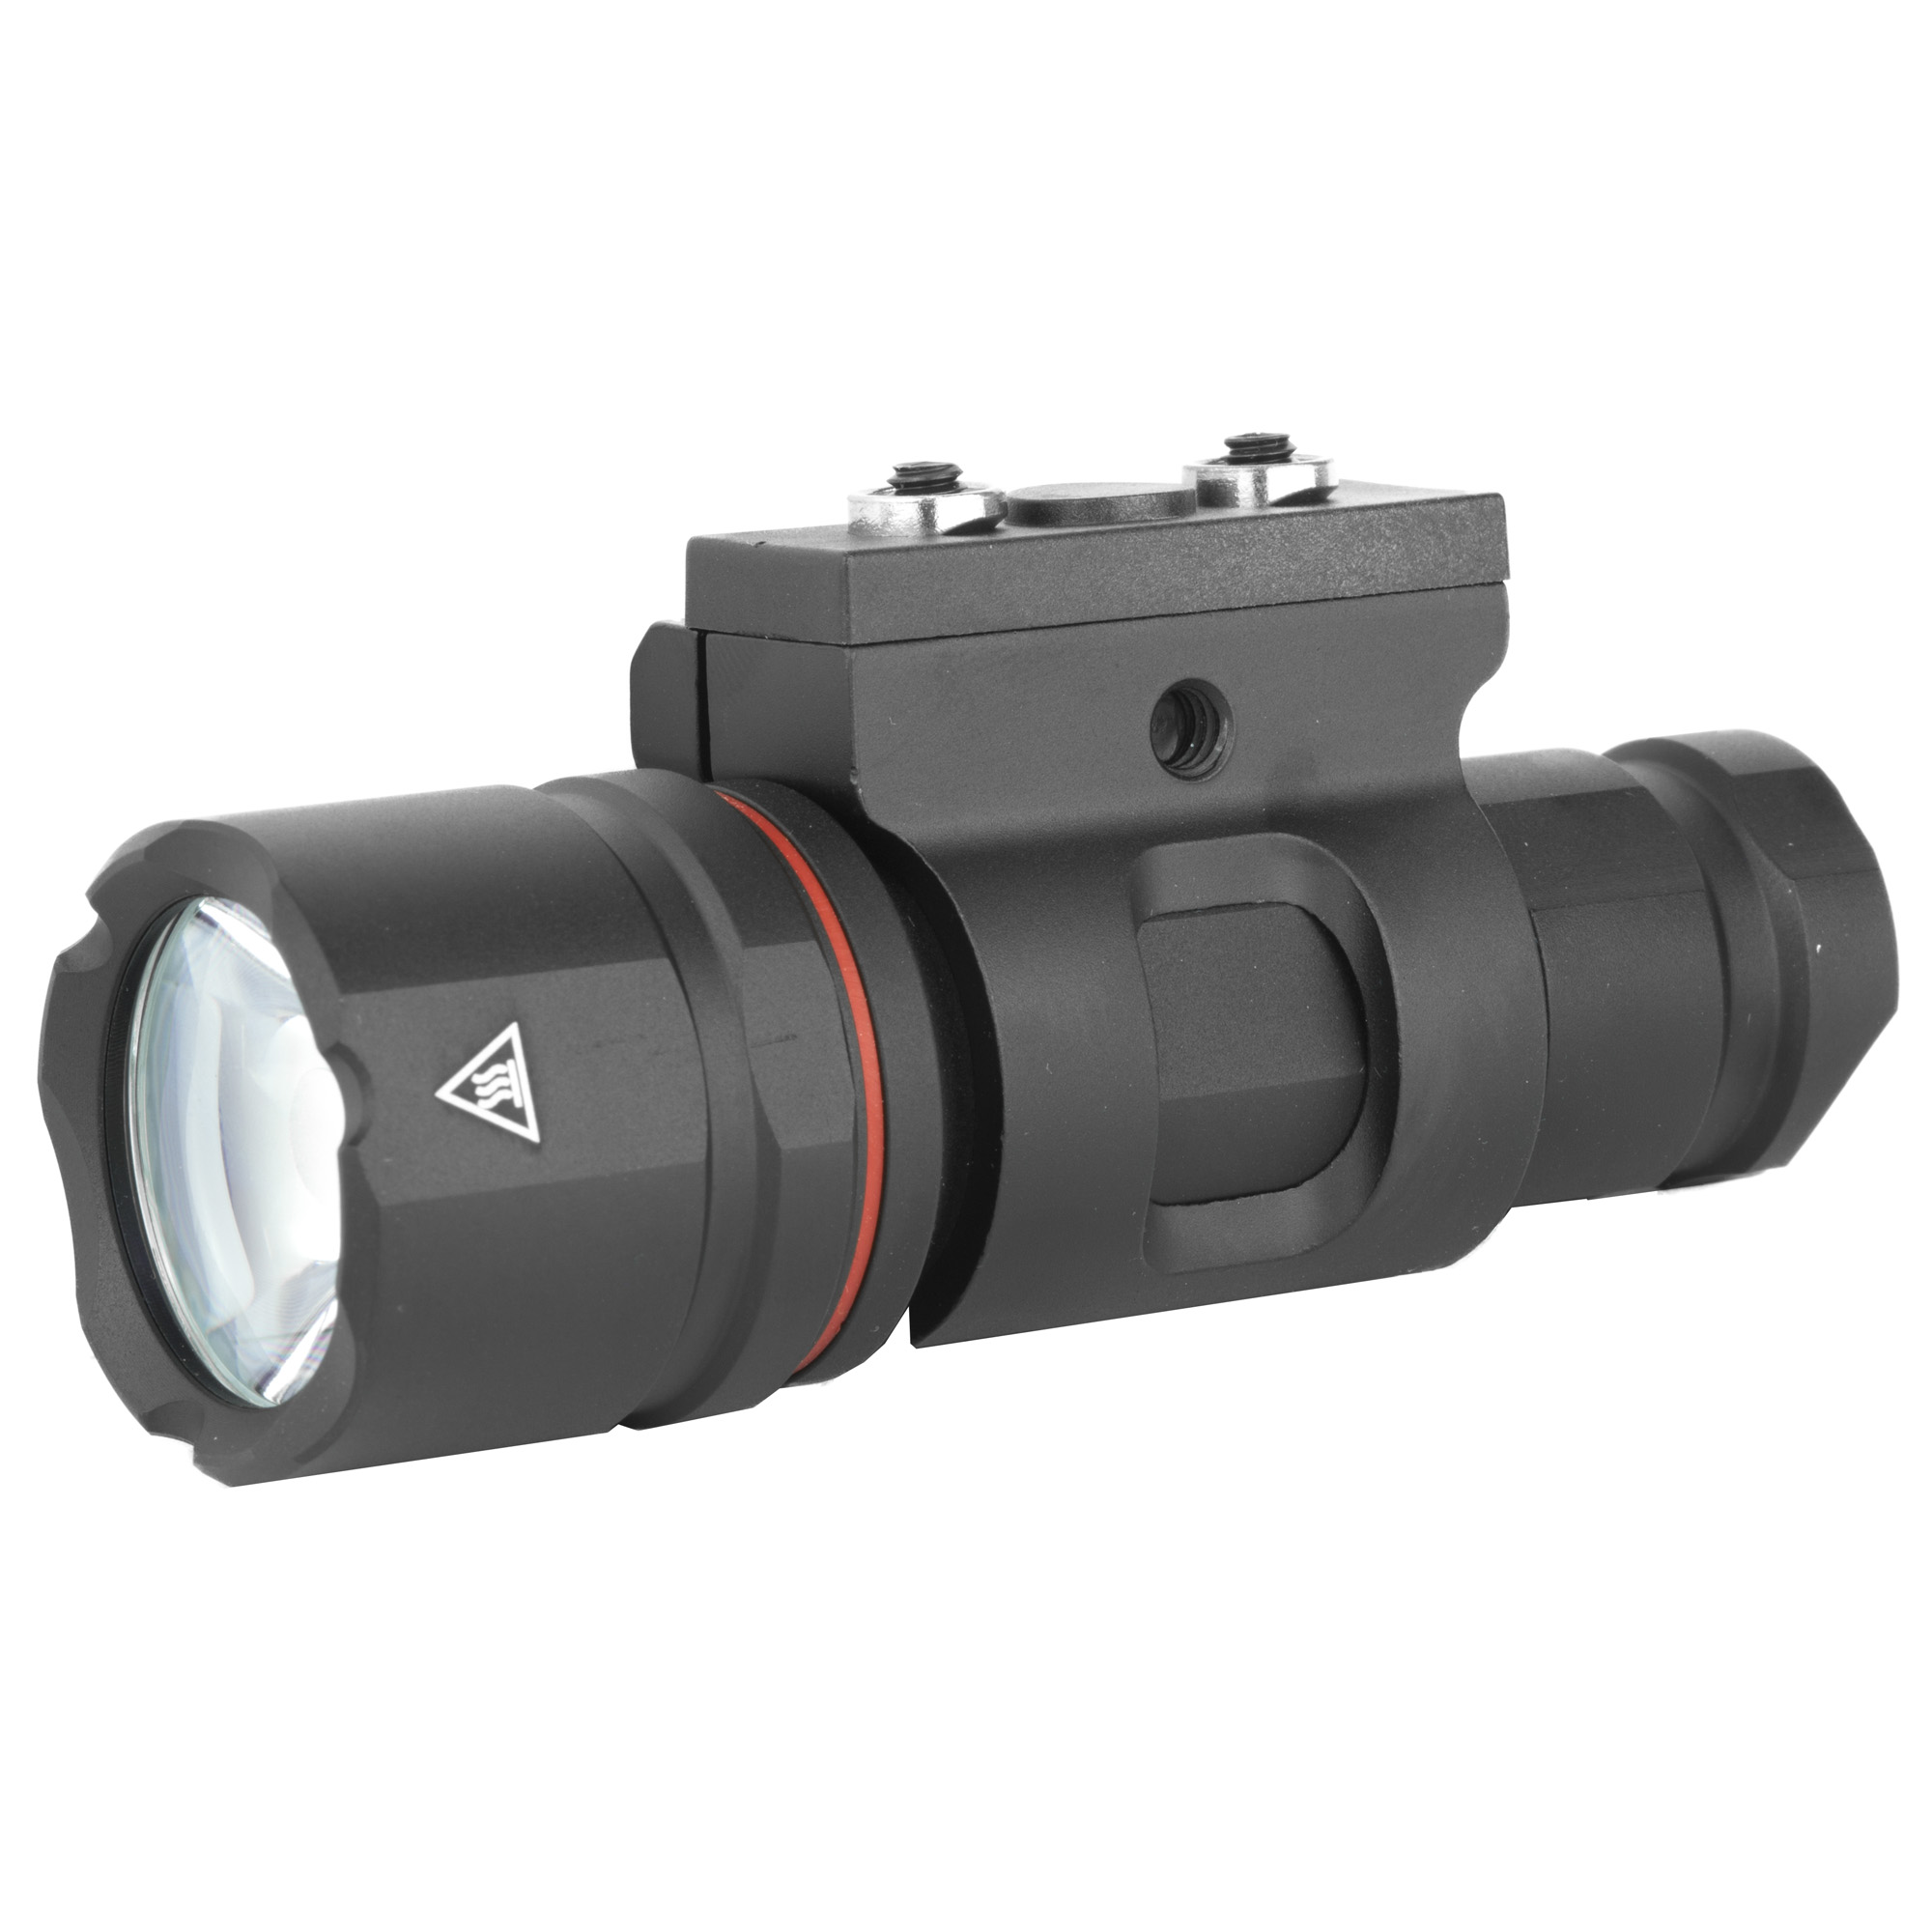 """Experience the power that effective illumination can provide. Introducing Crimson Trace Tactical Lights"""" a best-in-class family of tactical lighting products for rail-adapted long guns"""" backed by the Crimson Trace reputation you trust. The CWL-102 is a powerful rail-attached tactical light for M1913 Picatinny"""" Keymod(R) and M-LOK(R) rail-equipped long guns and provides 500 Lumens of white light."""